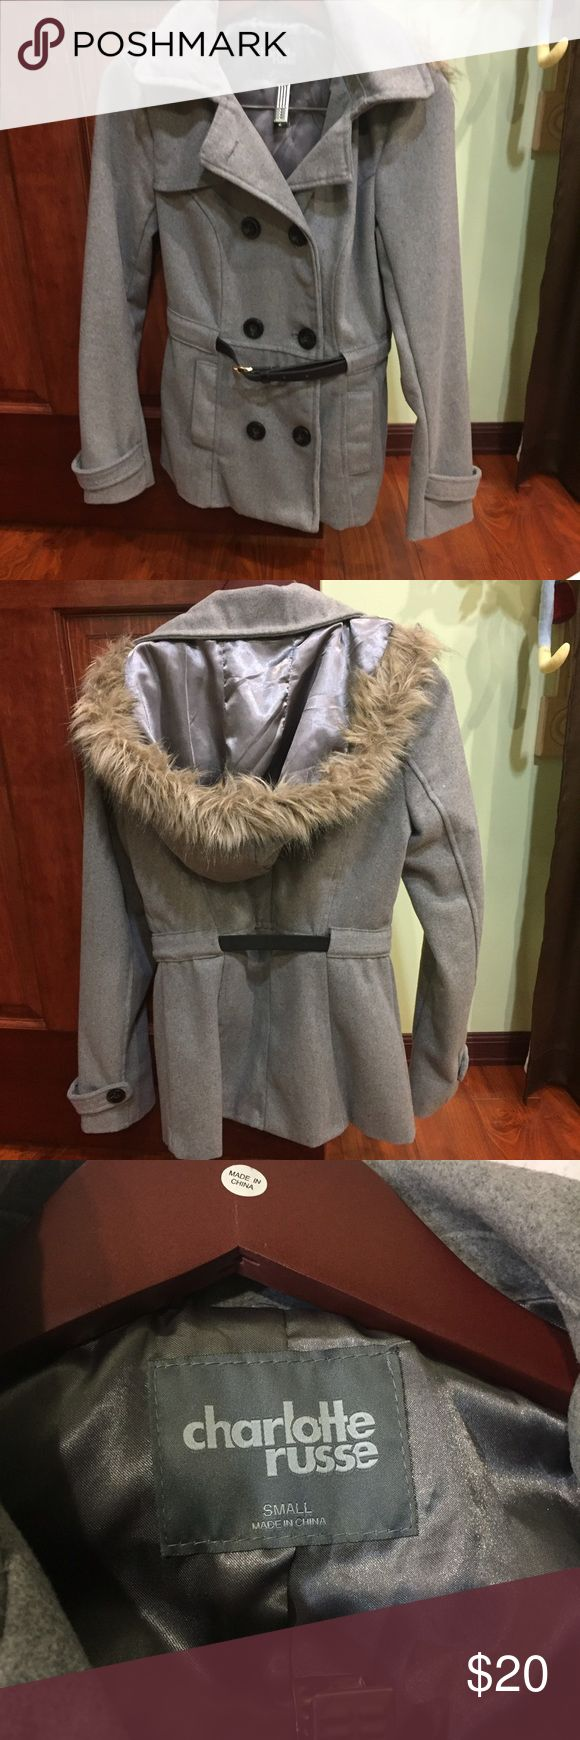 NEW Charlotte Russe Grey Pea Coat! Size Small! Grey jacket, NEW and very comfortable, inside material is satin.  Hood has fur aligned with it.  Adjustable belt! Charlotte Russe Jackets & Coats Pea Coats